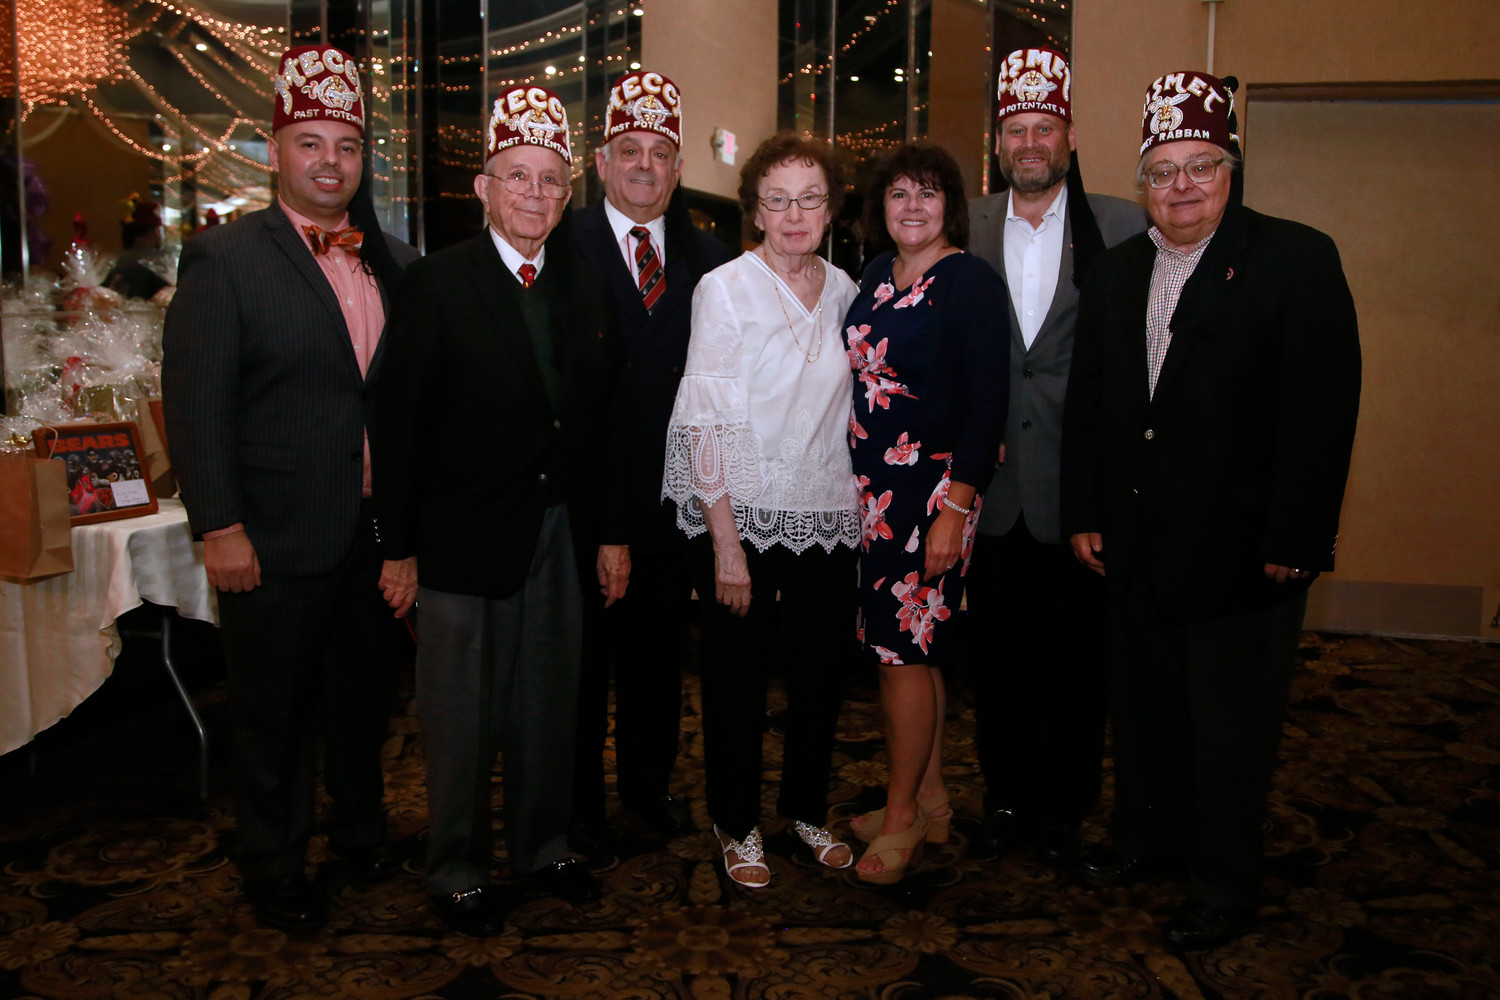 Klein, center, with Shriners Hospitals for Children representatives, from left, Avery Toledo, Ted Jacobsen, Ron Sablosky, Terry Diamond, Greg Feldman and Robert D'Carlo.